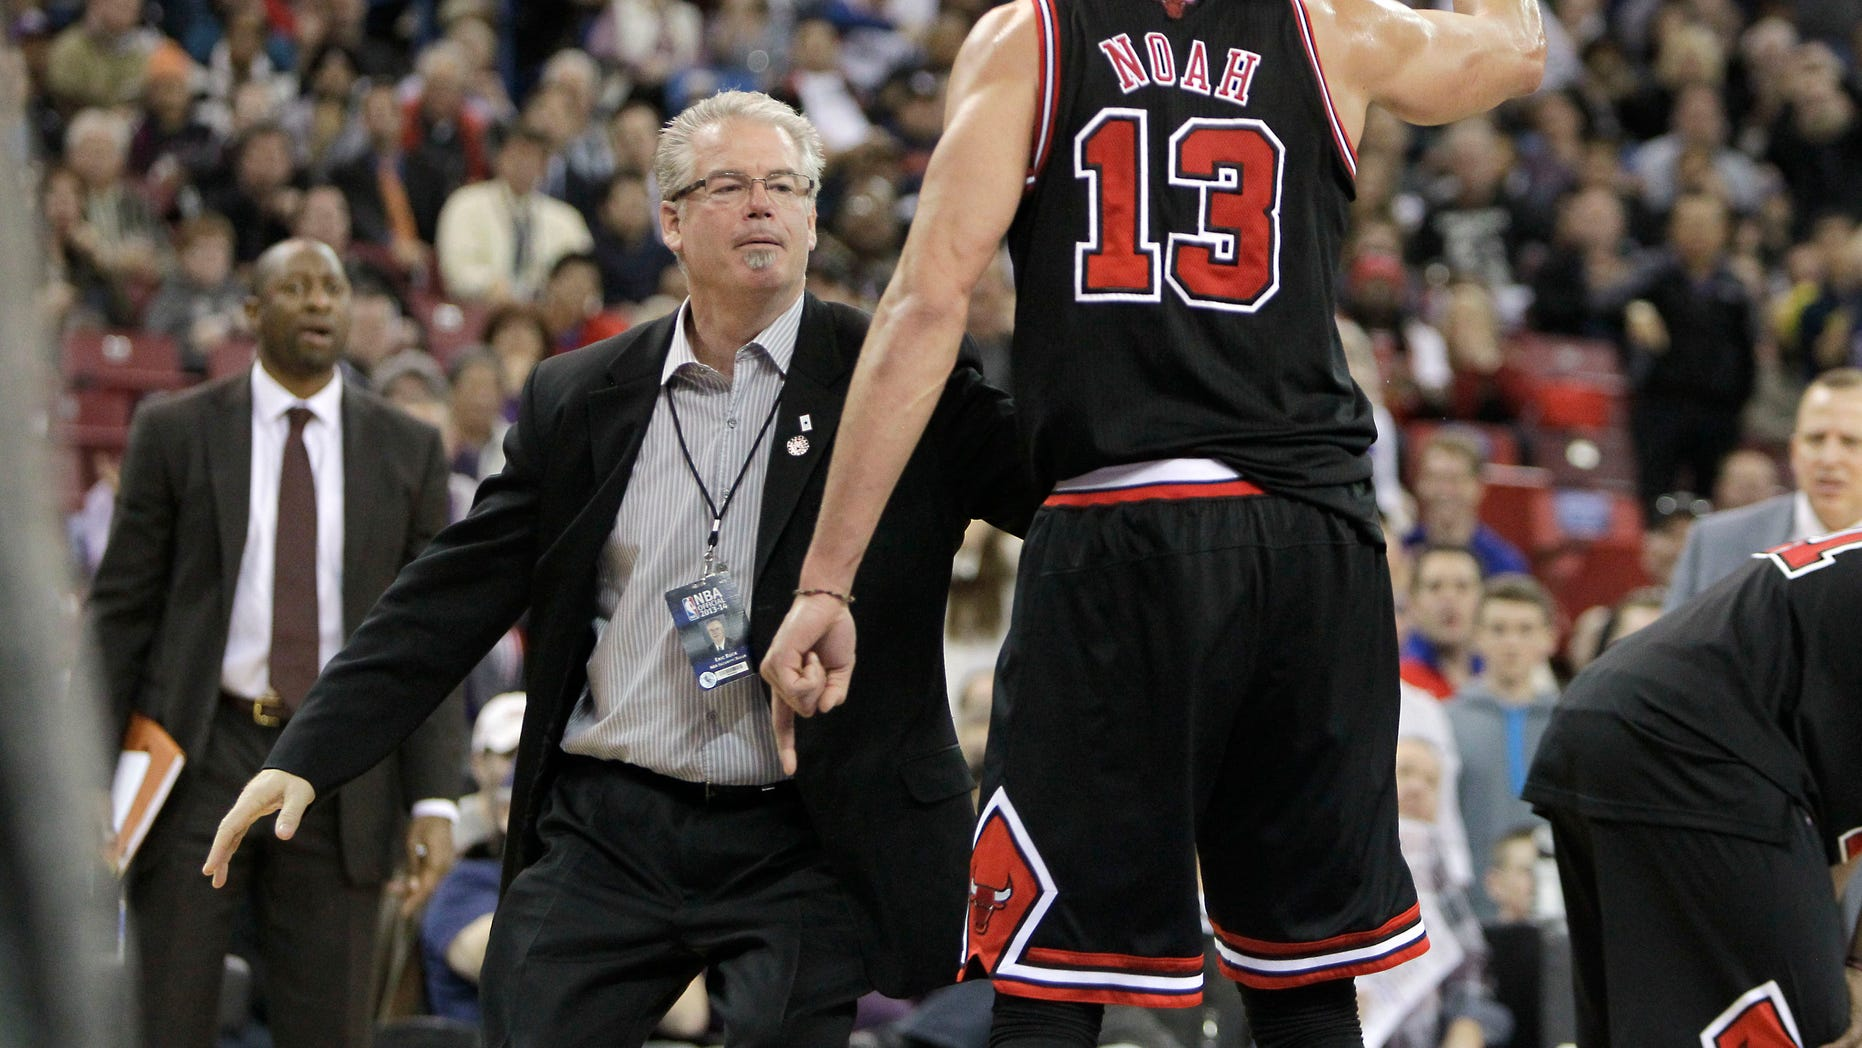 Chicago Bulls center Joakim Noah is restrained by Bulls security agent Eric Buck, after he was given his second technical foul and was ejected from the game in the third quarter against the Sacramento Kings in a NBA basketball game in Sacramento, Calif., Monday, Feb. 3, 2014. The Kings won 99-70. (AP Photo/Rich Pedroncelli)